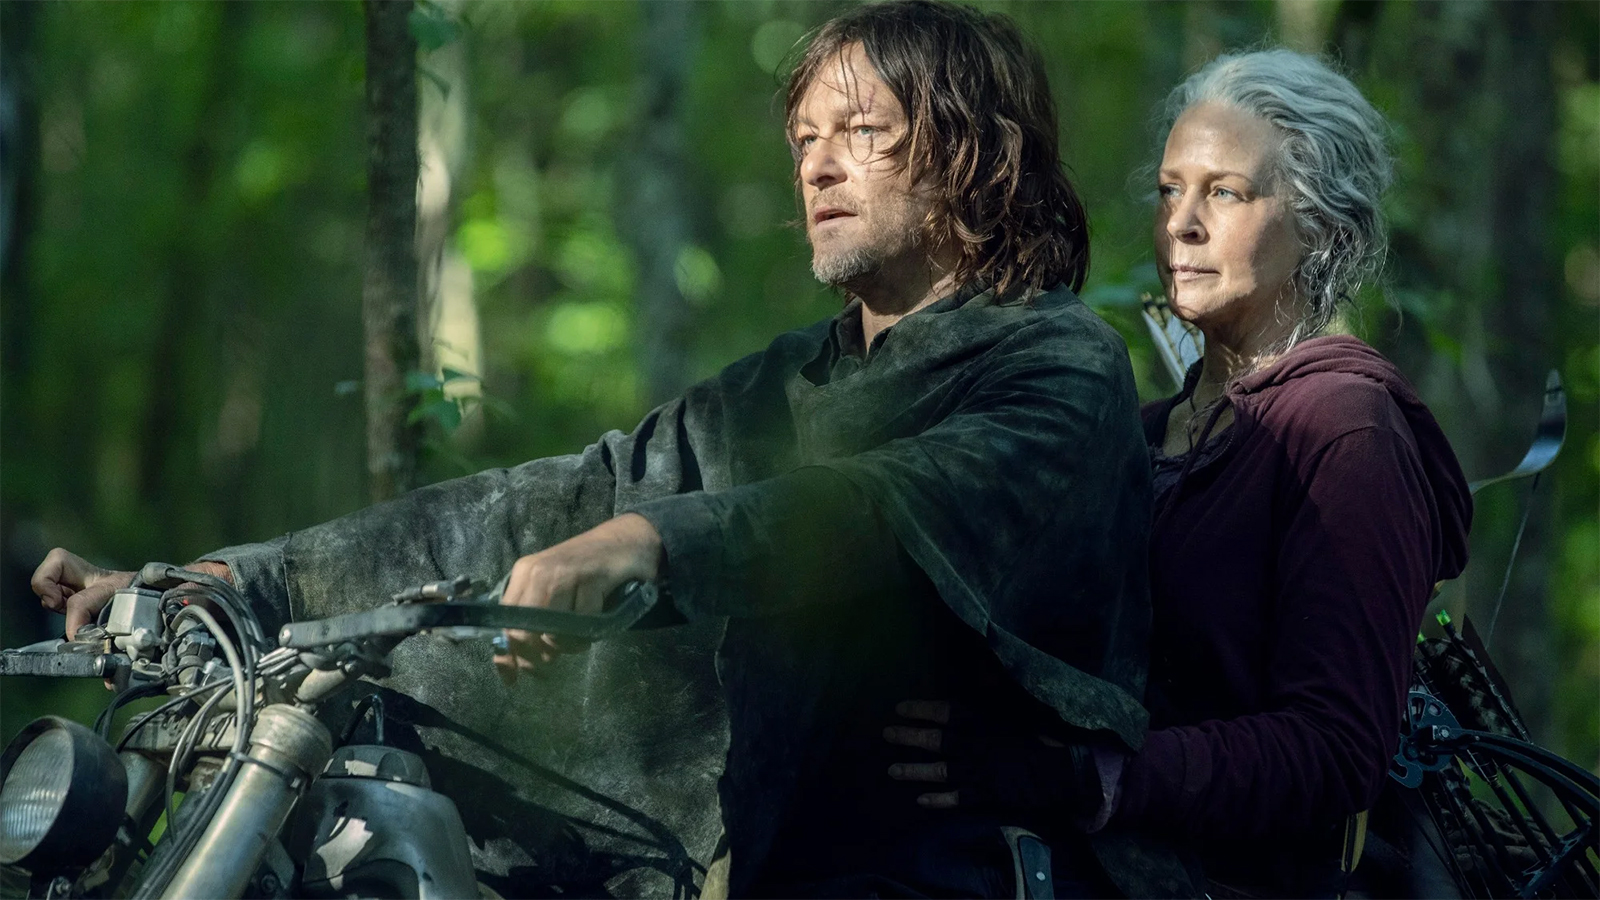 Daryl and Carol in The Walking Dead